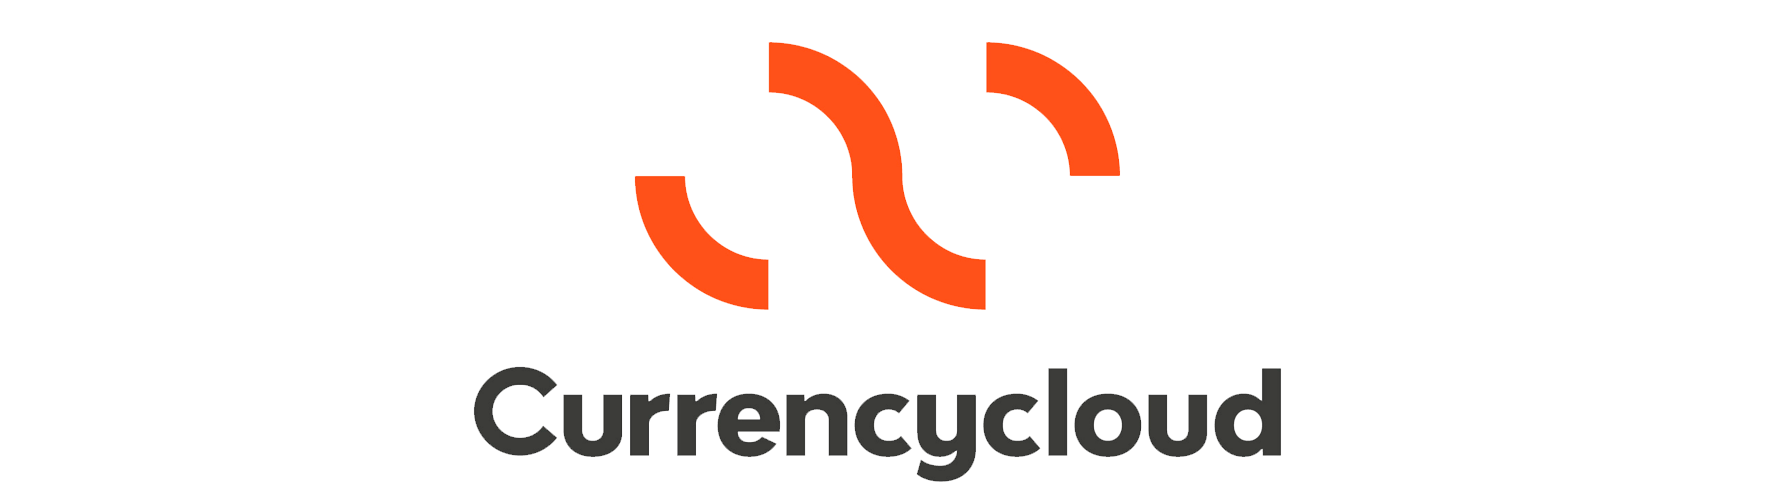 currencycloud logo